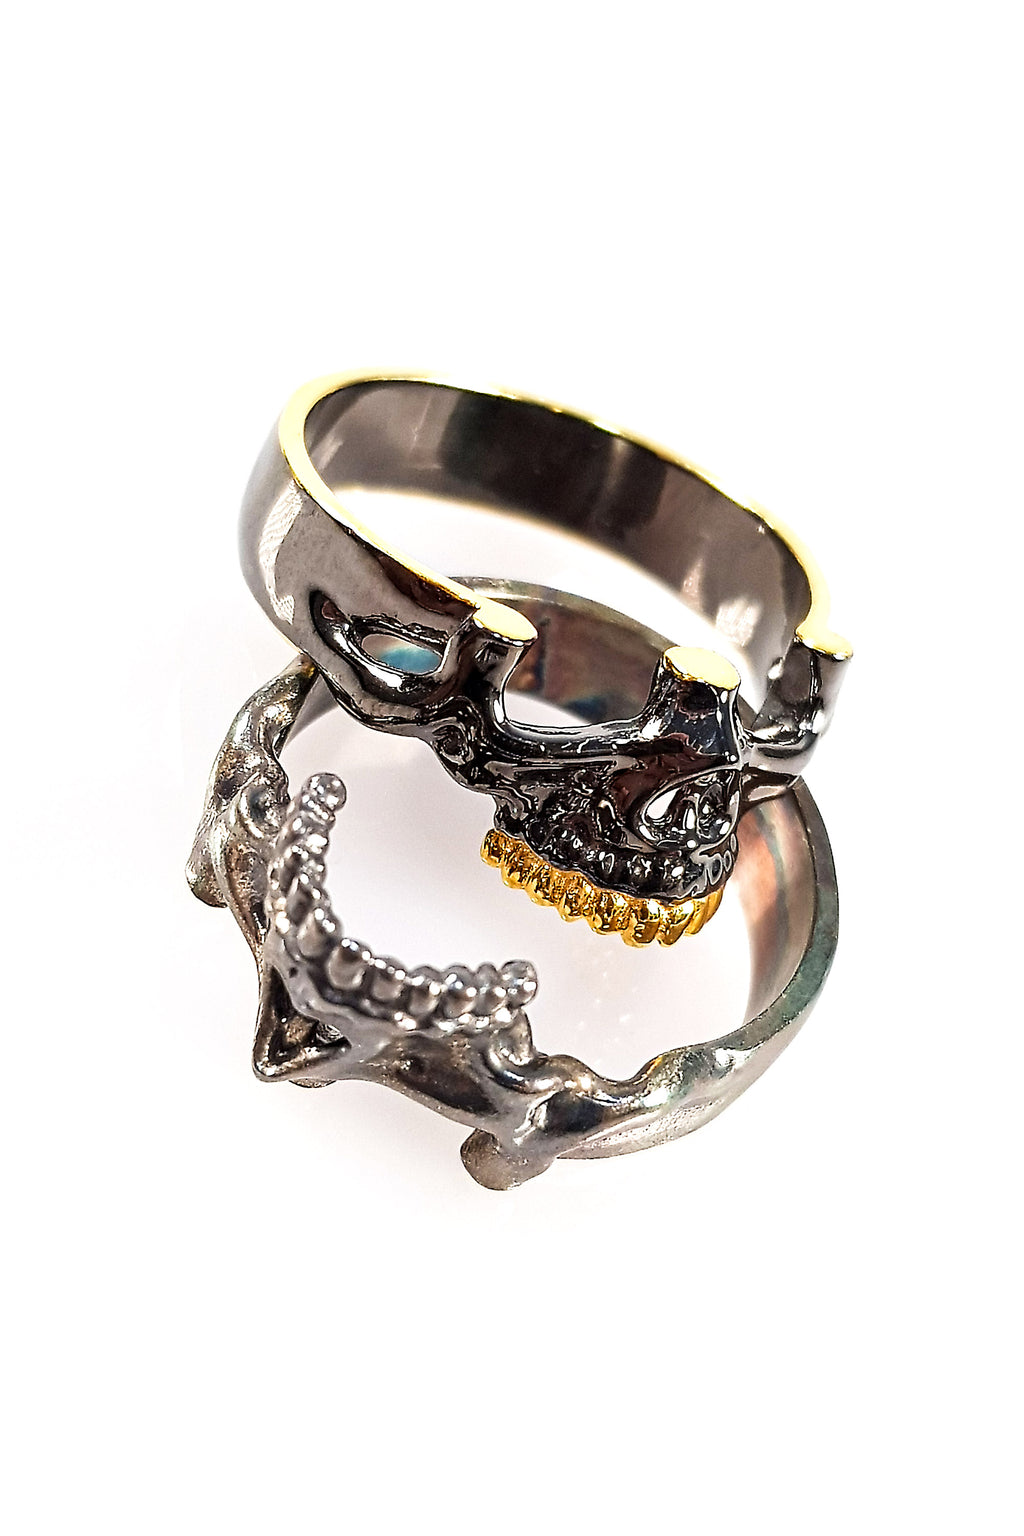 Stackable Sterling Silver Skull Ring | Skull Band Ring